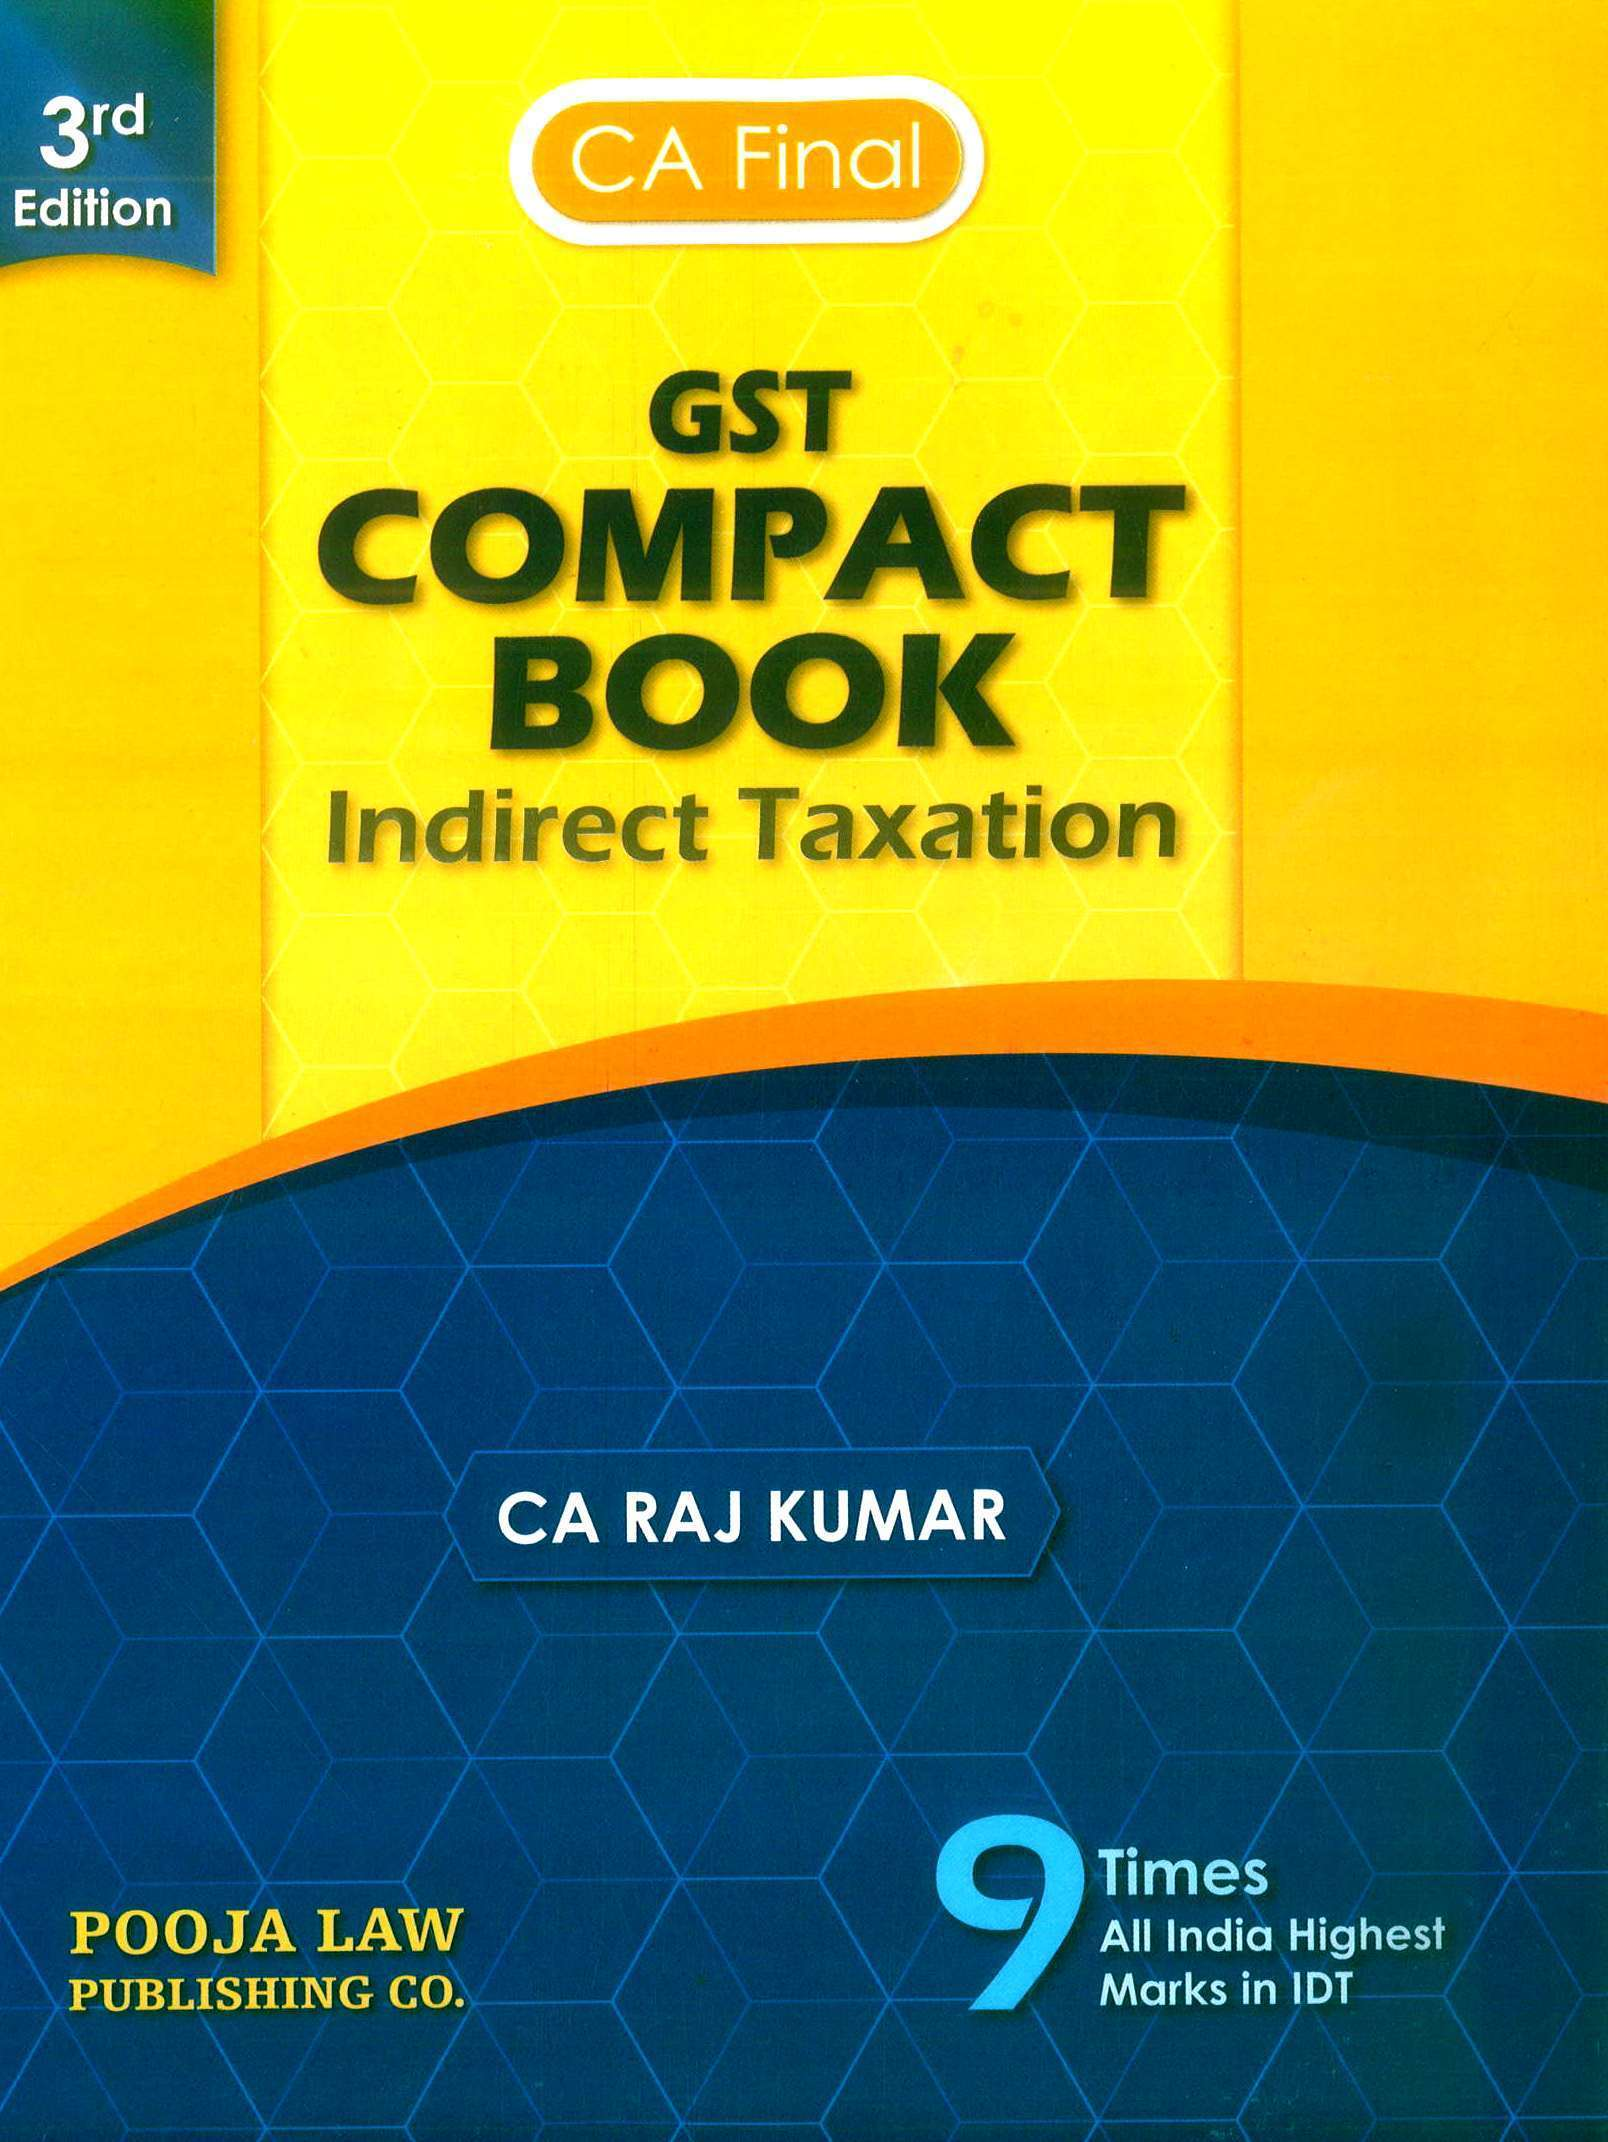 Pooja Law House Indirect Taxation Compact Book on GST Old And New Syllabus for CA Final By CA Raj Kumar Applicable for Nov 2019 Exam